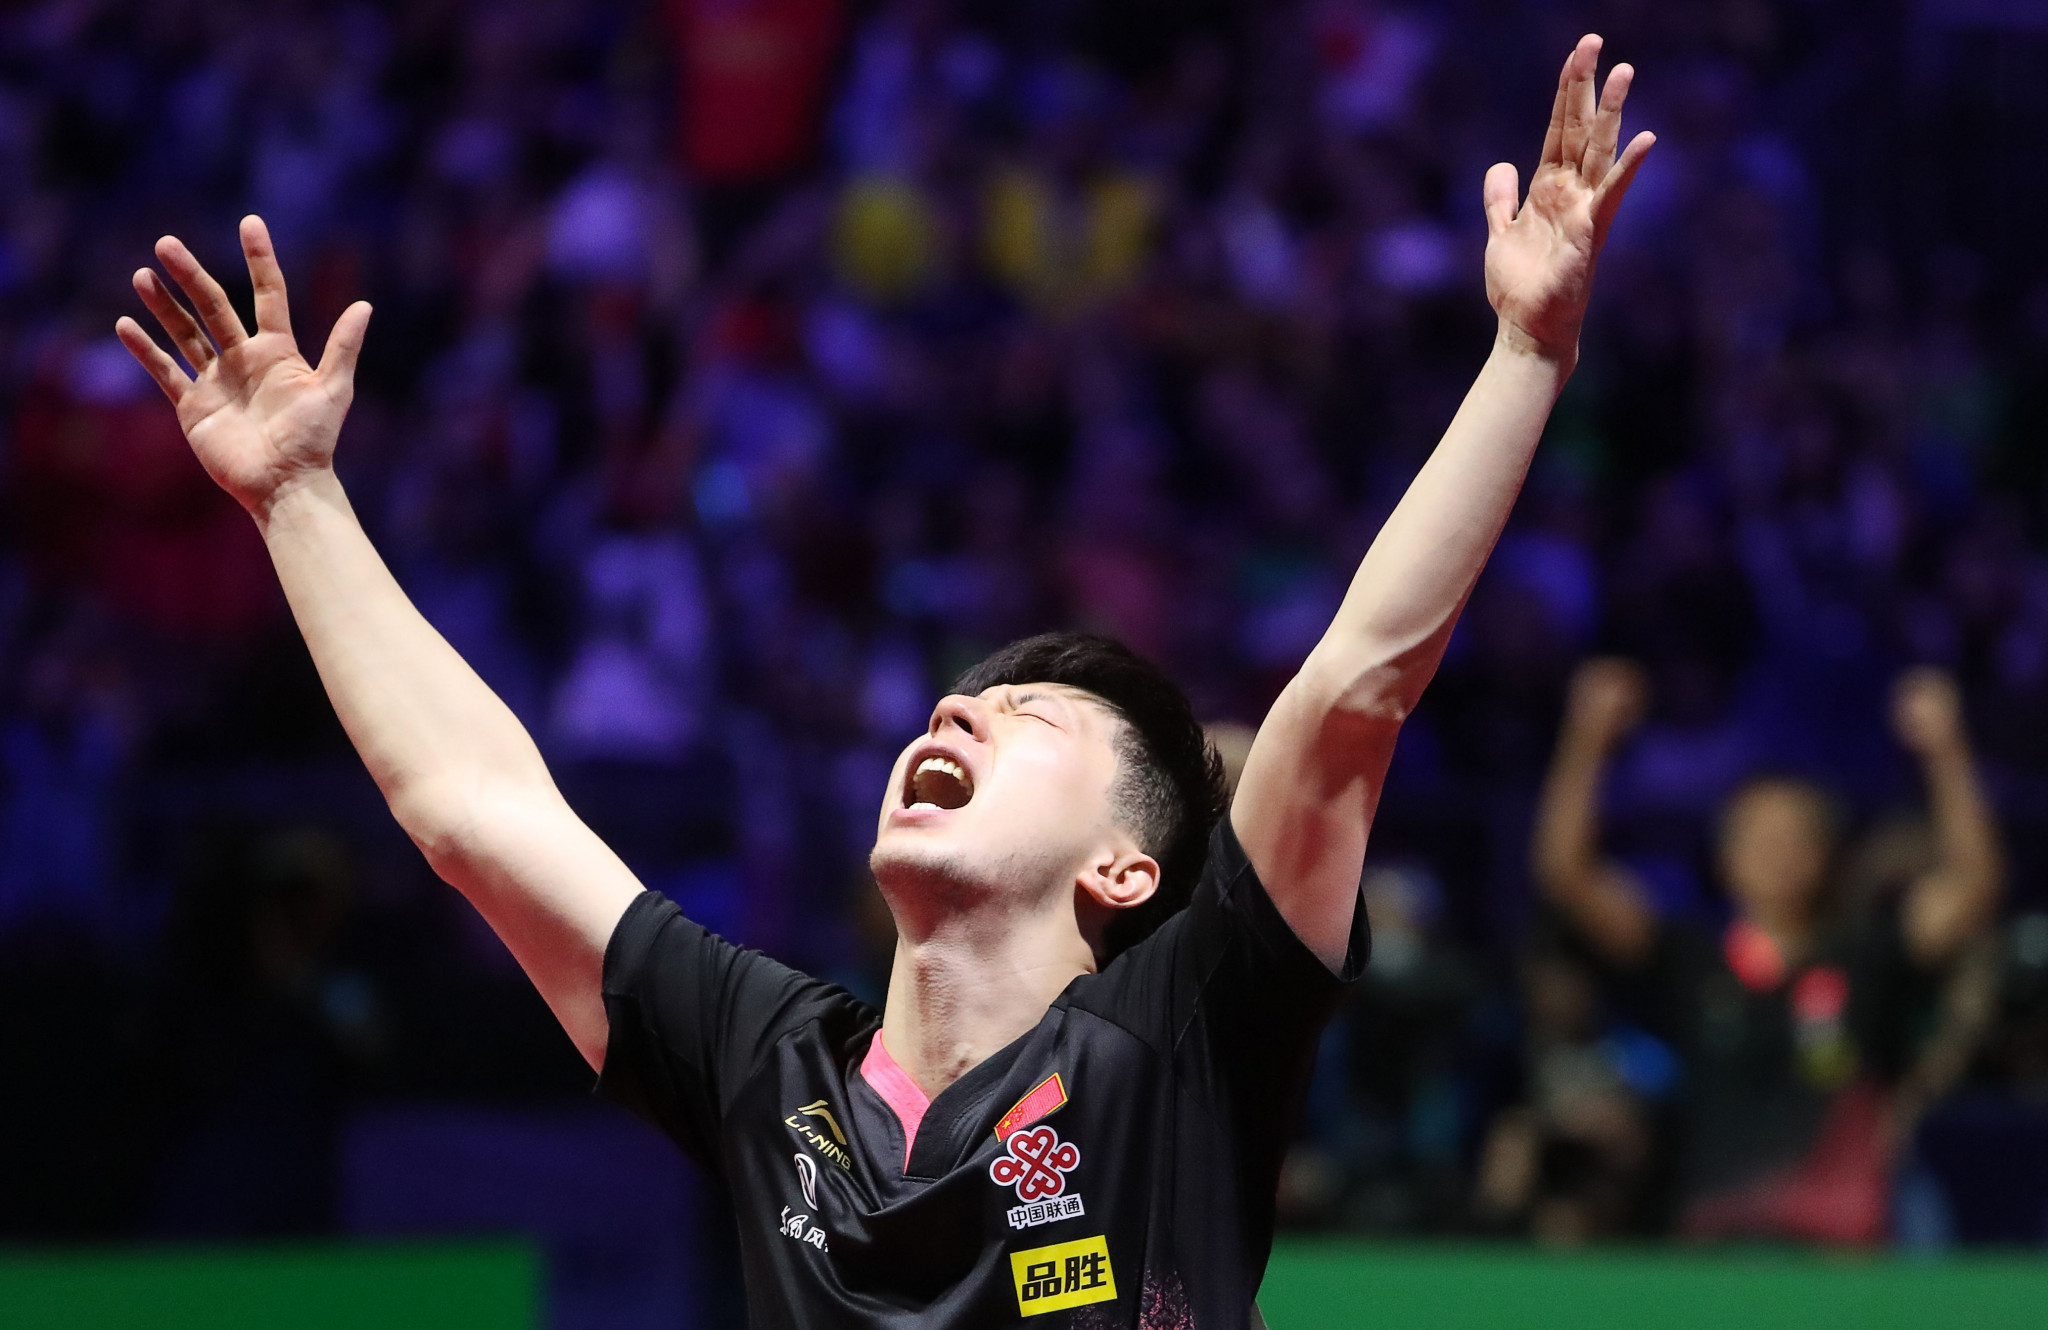 Ma secures third consecutive title as China complete clean sweep at ITTF World Championships